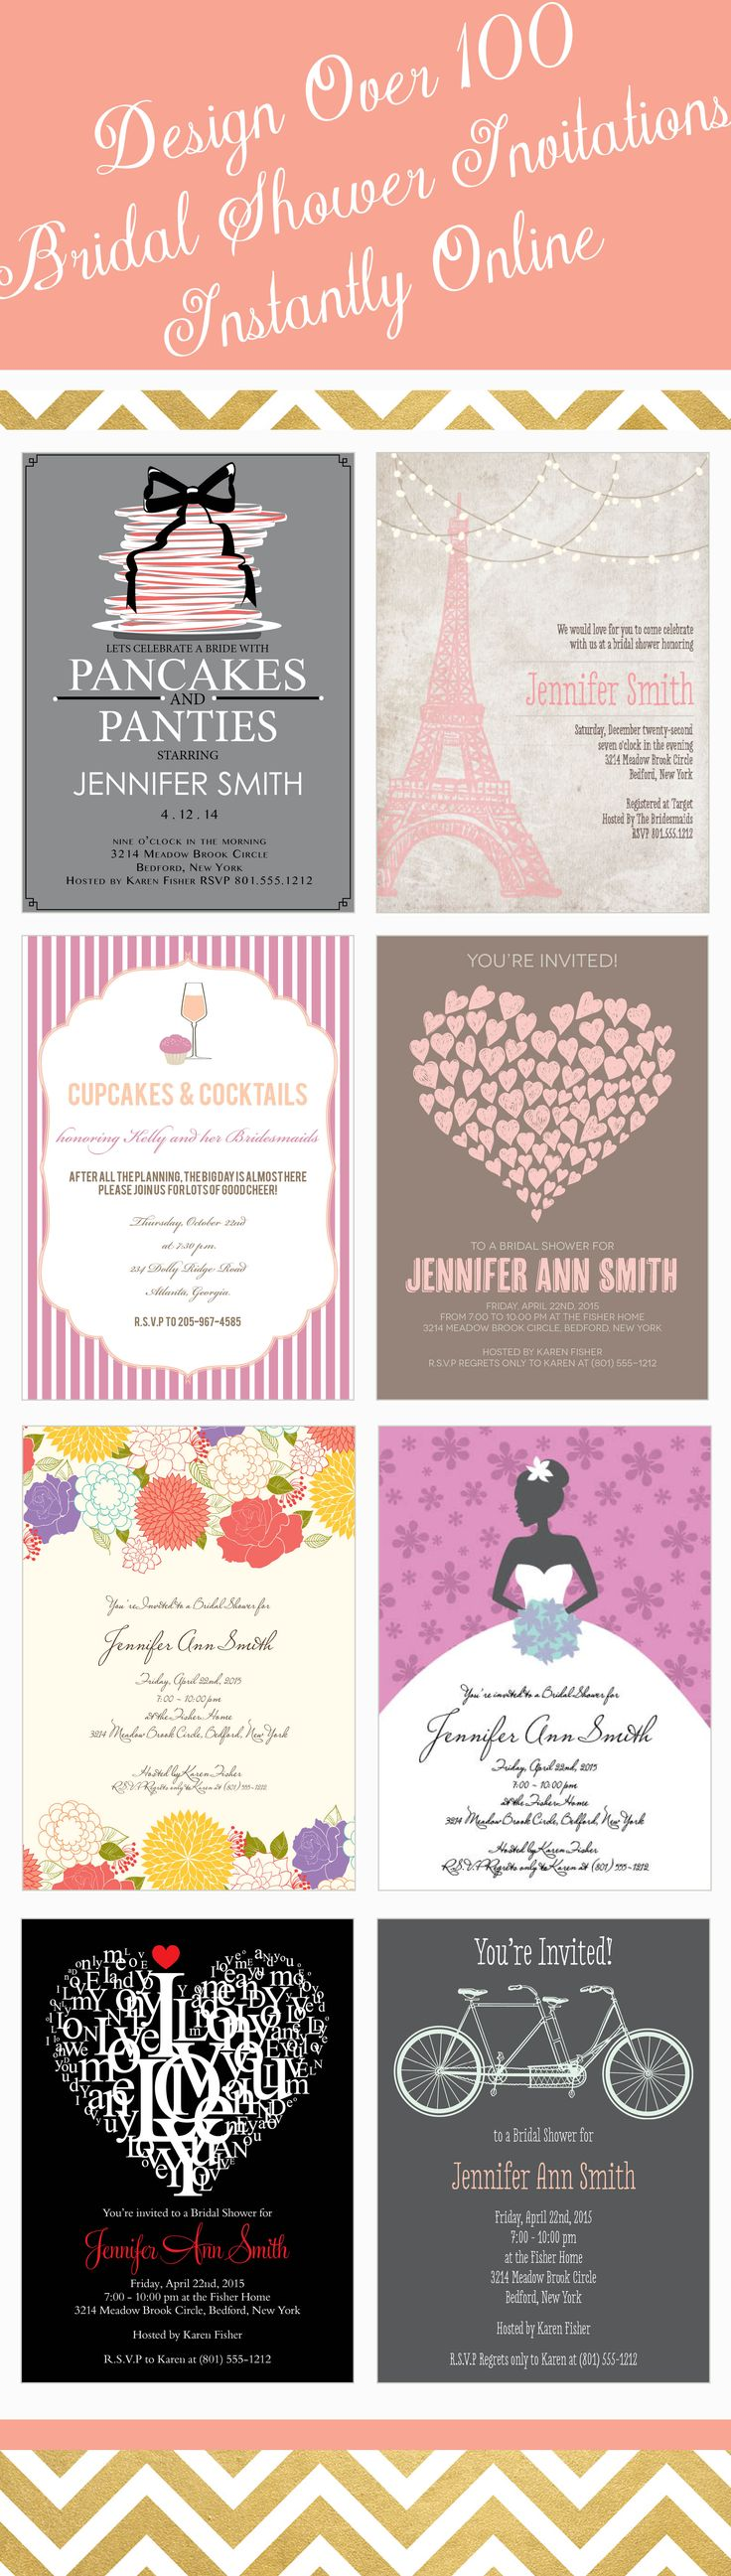 recipe themed bridal shower invitation wording%0A Trendy bridal shower design that can be instantly customized with over      different color options and